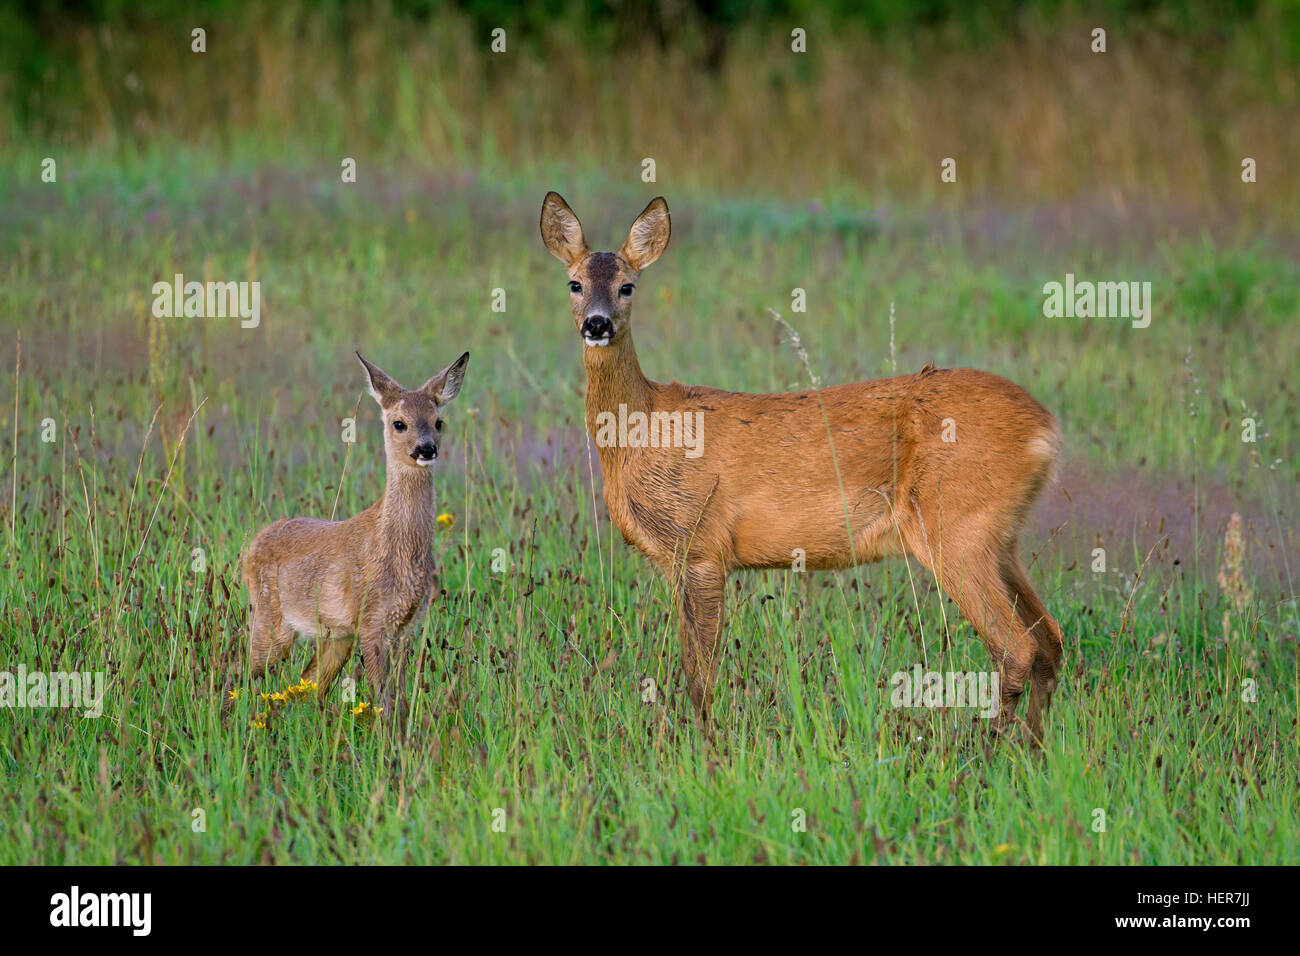 European roe deer (Capreolus capreolus) female with fawn in grassland at forest's edge in summer - Stock Image